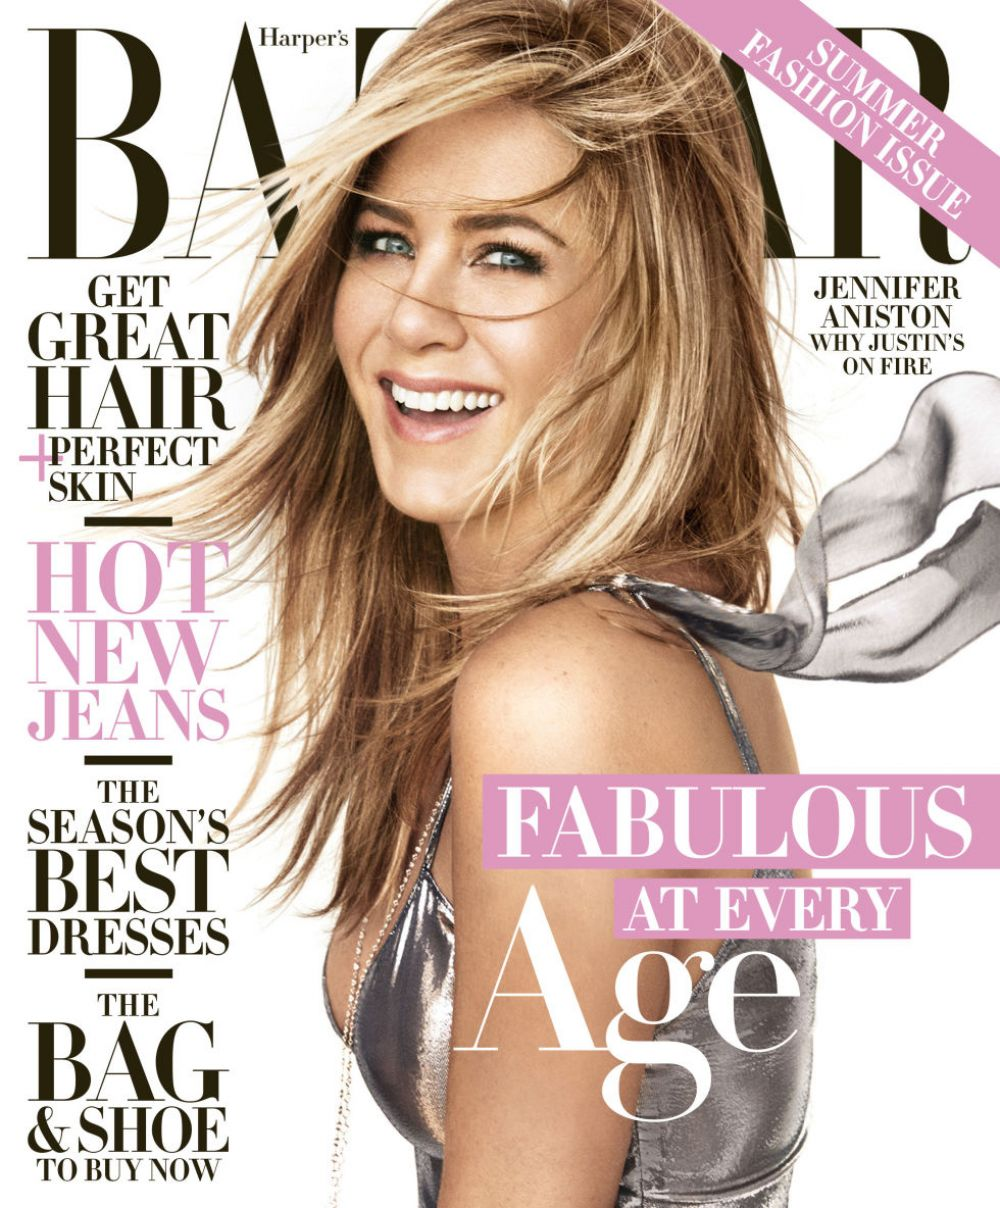 JENNIFER ANISTON in Harper's Bazaar Magazine, April 2016 Issue - HawtCelebs -...